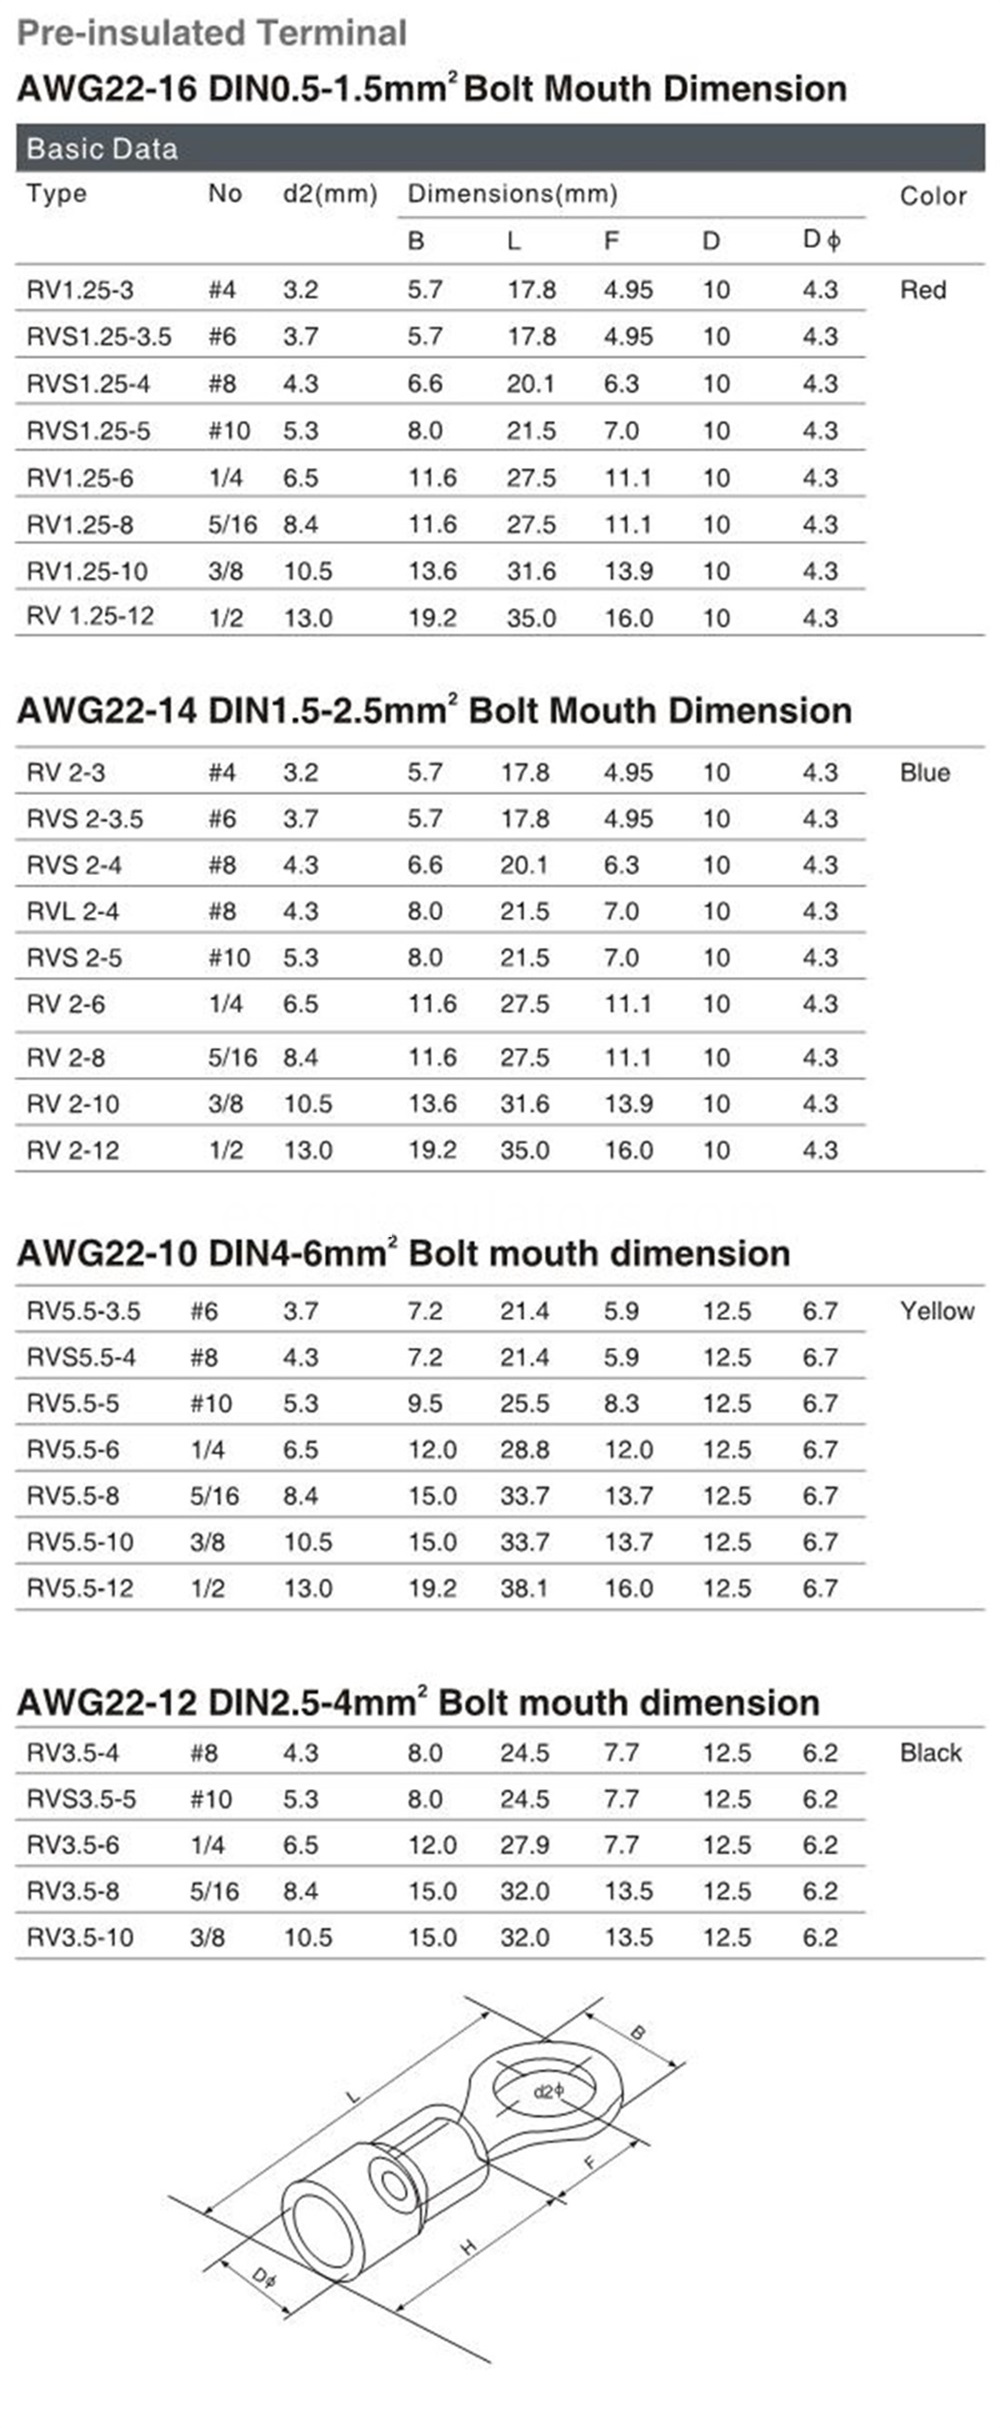 AWG22 bolt mouth